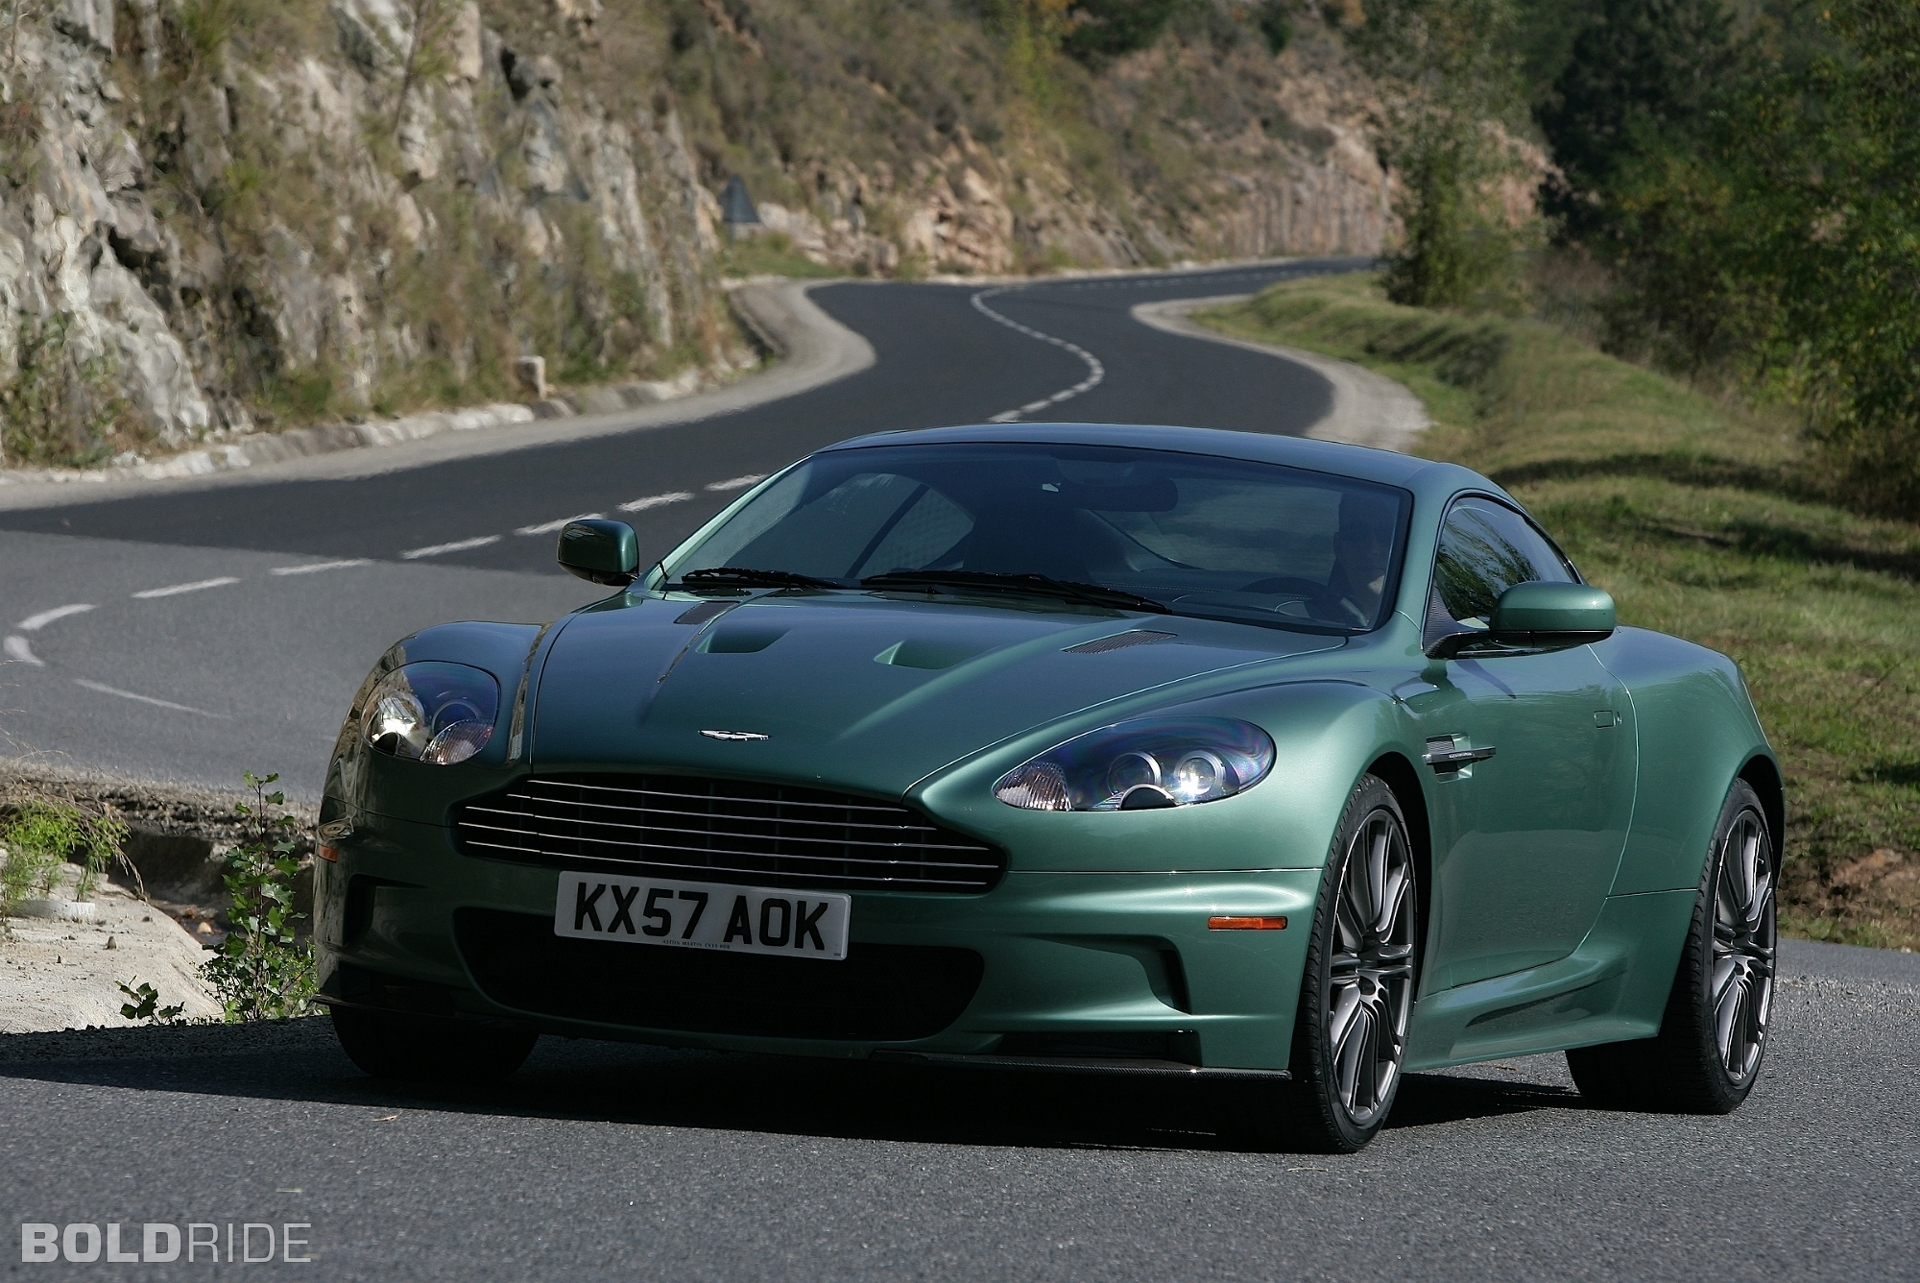 Luxury Car DB8 Aston Martin t